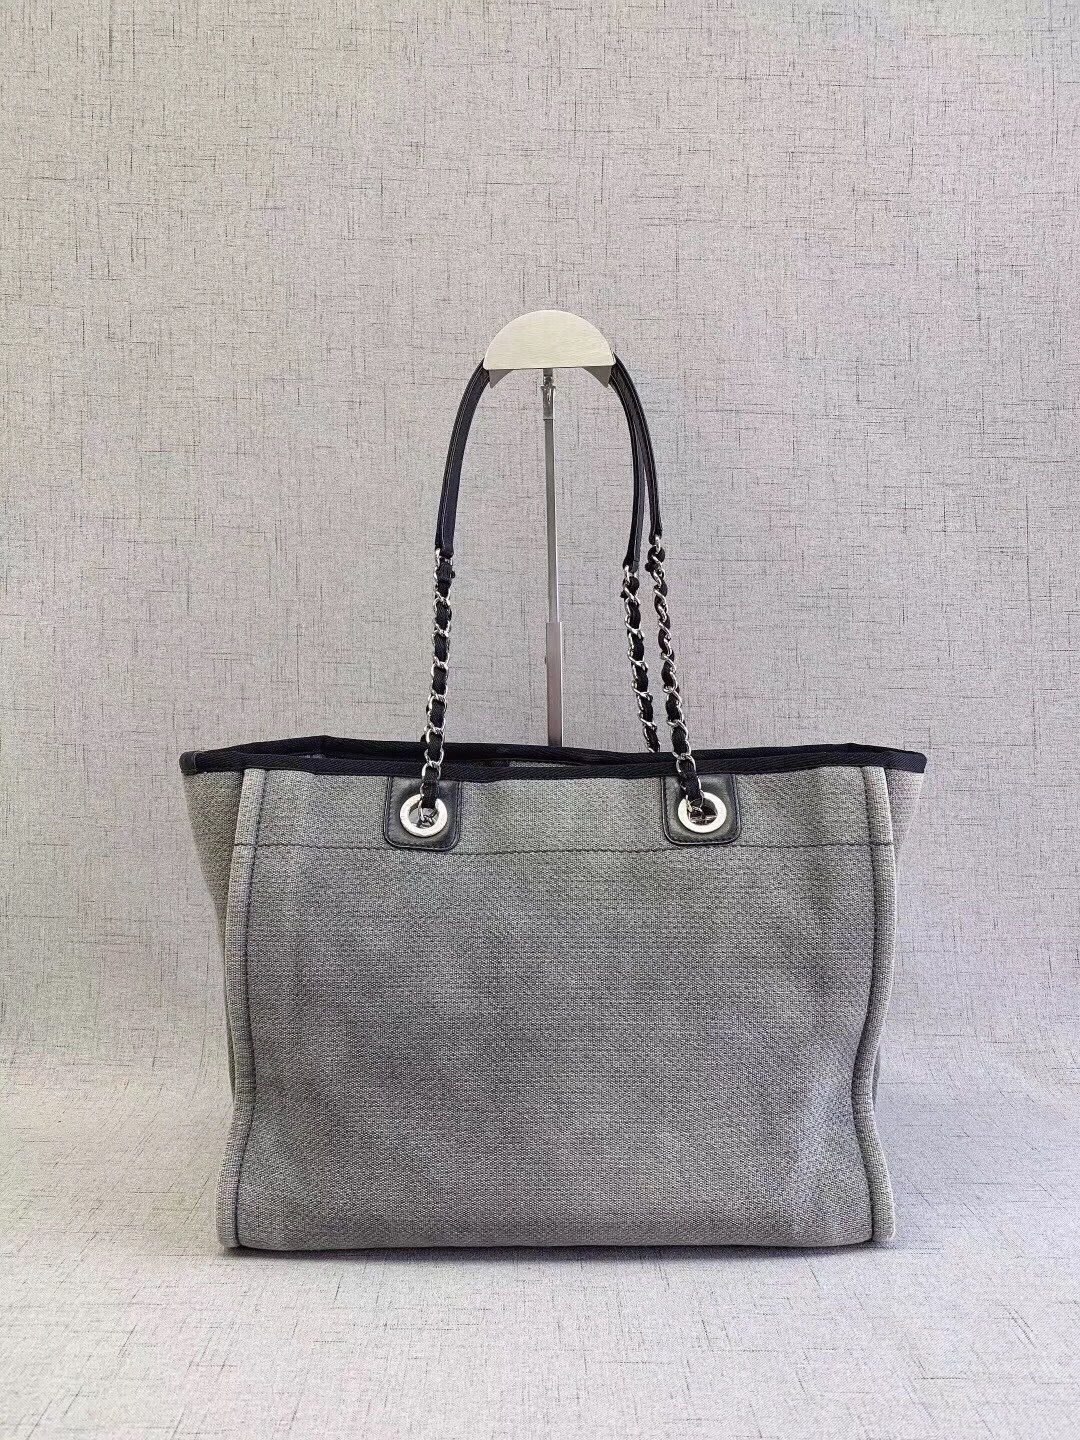 50942f712d AUTHENTIC CHANEL BLUE GREY MEDIUM CANVAS DEAUVILLE 2 WAY TOTE BAG ...